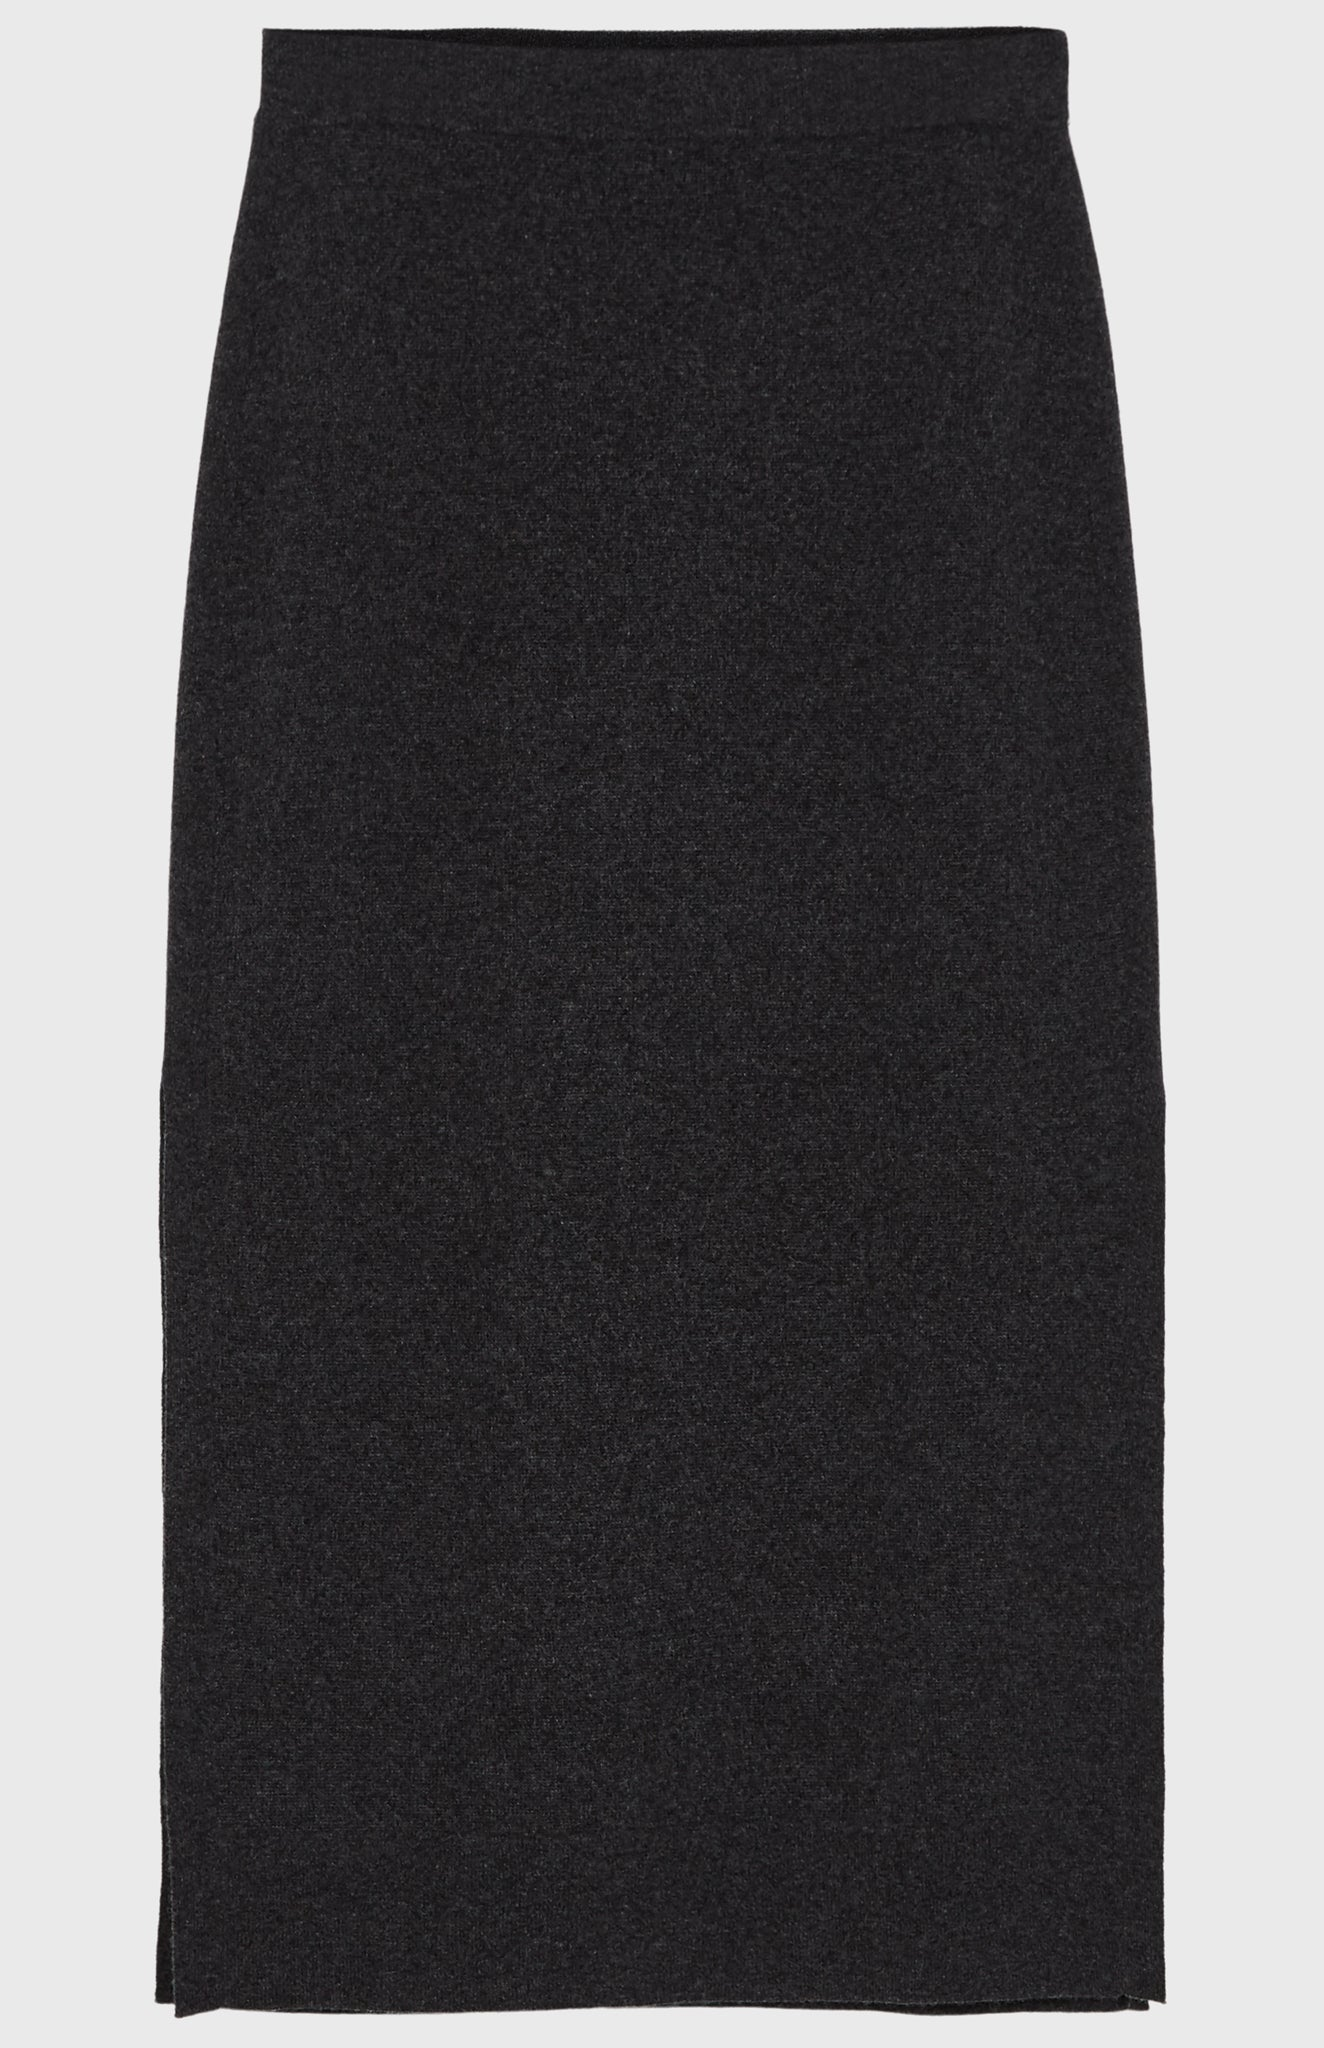 Long Relaxed Fit Skirt In Charcoal